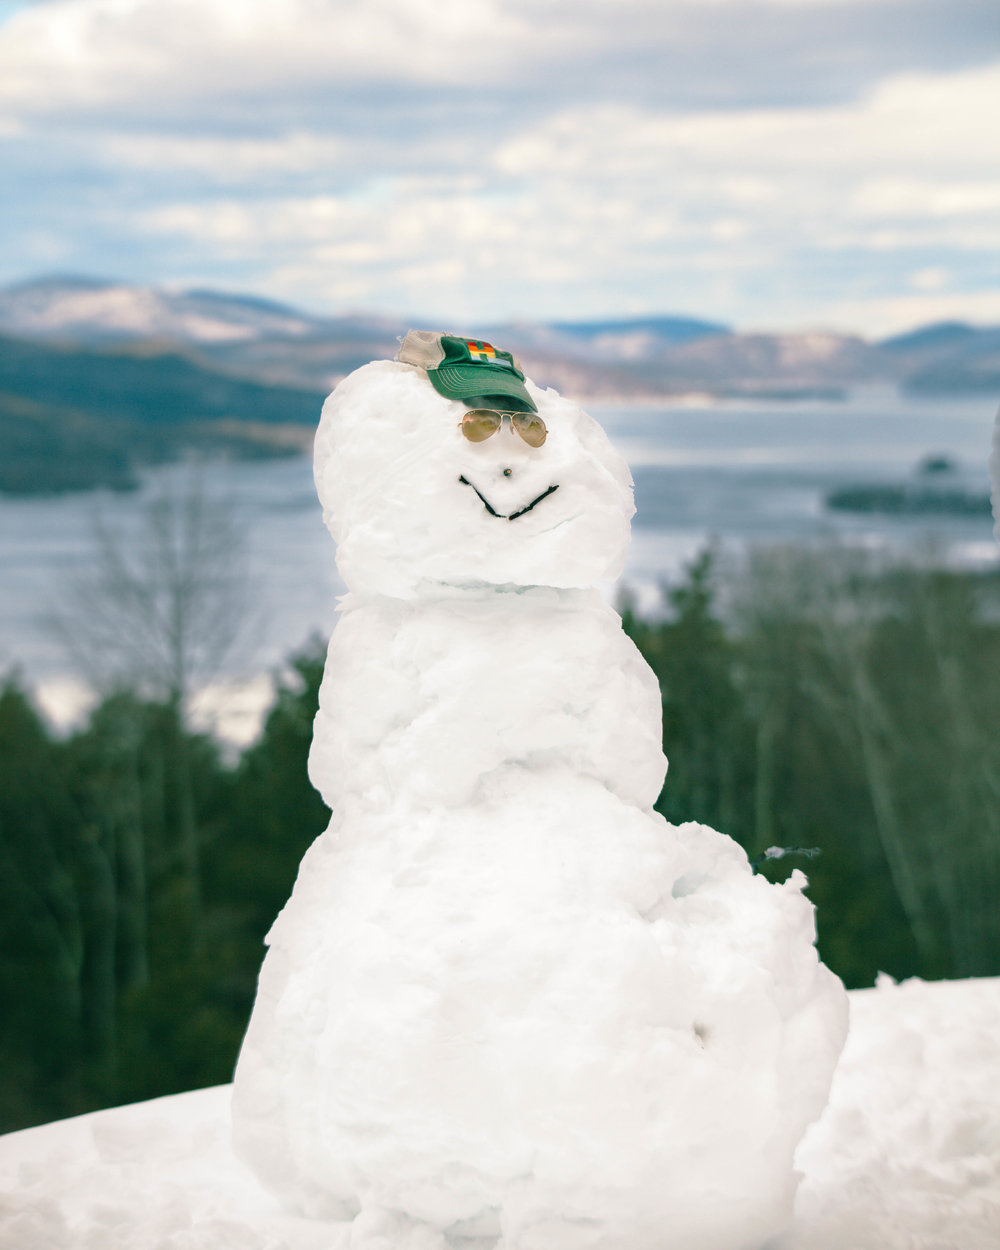 Our awesome snowman!!